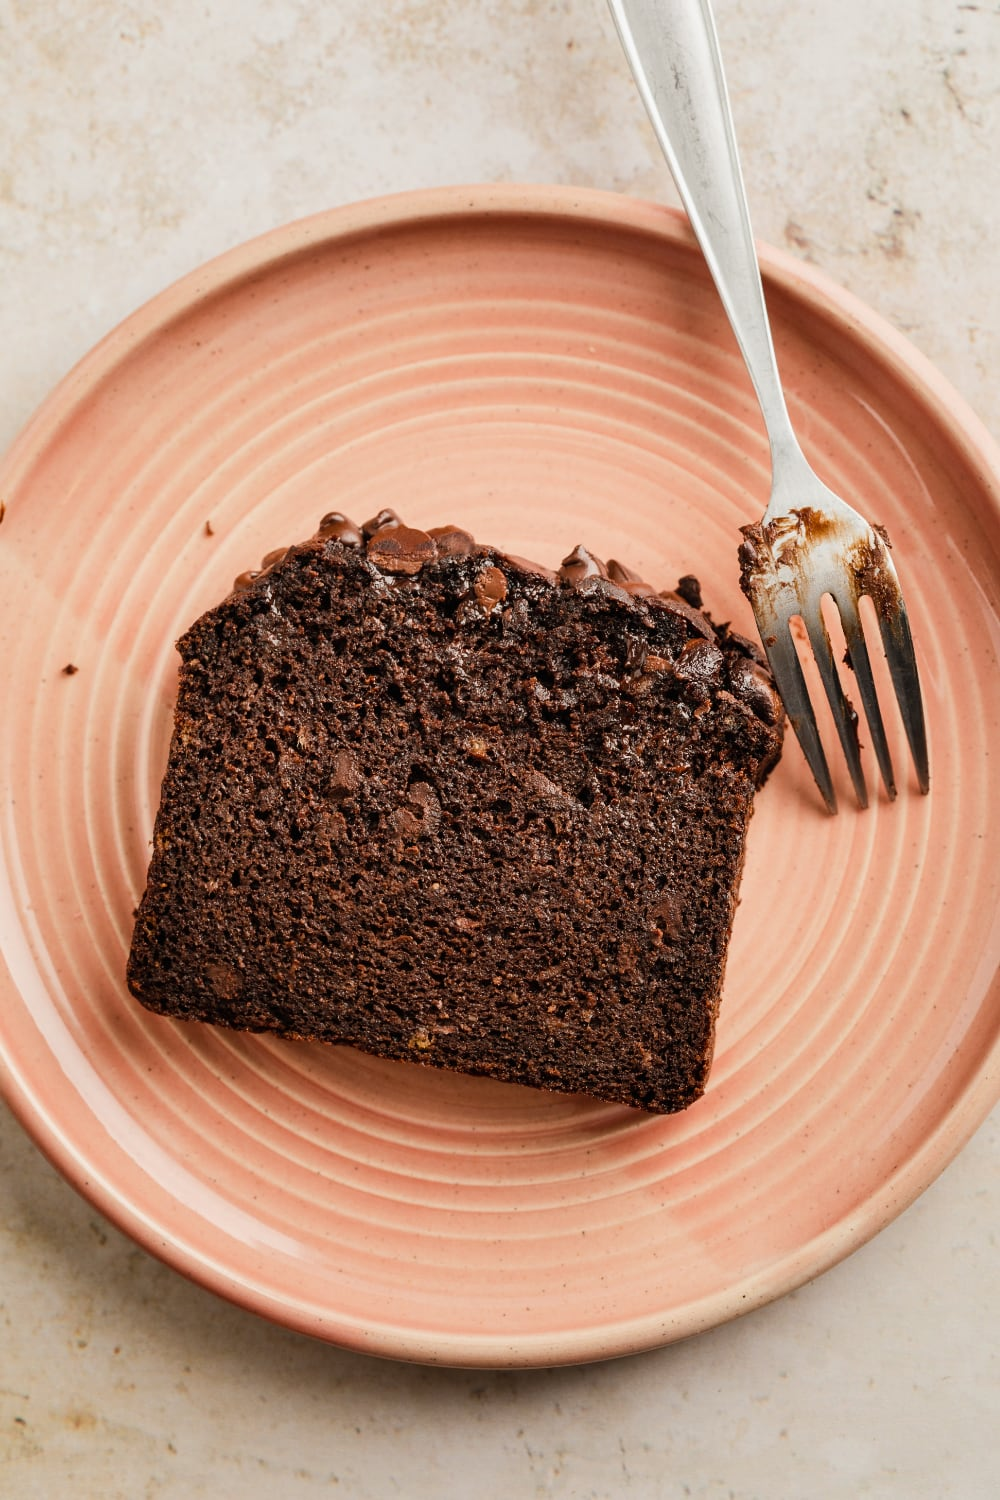 a slice of paleo chocolate banana bread on a place